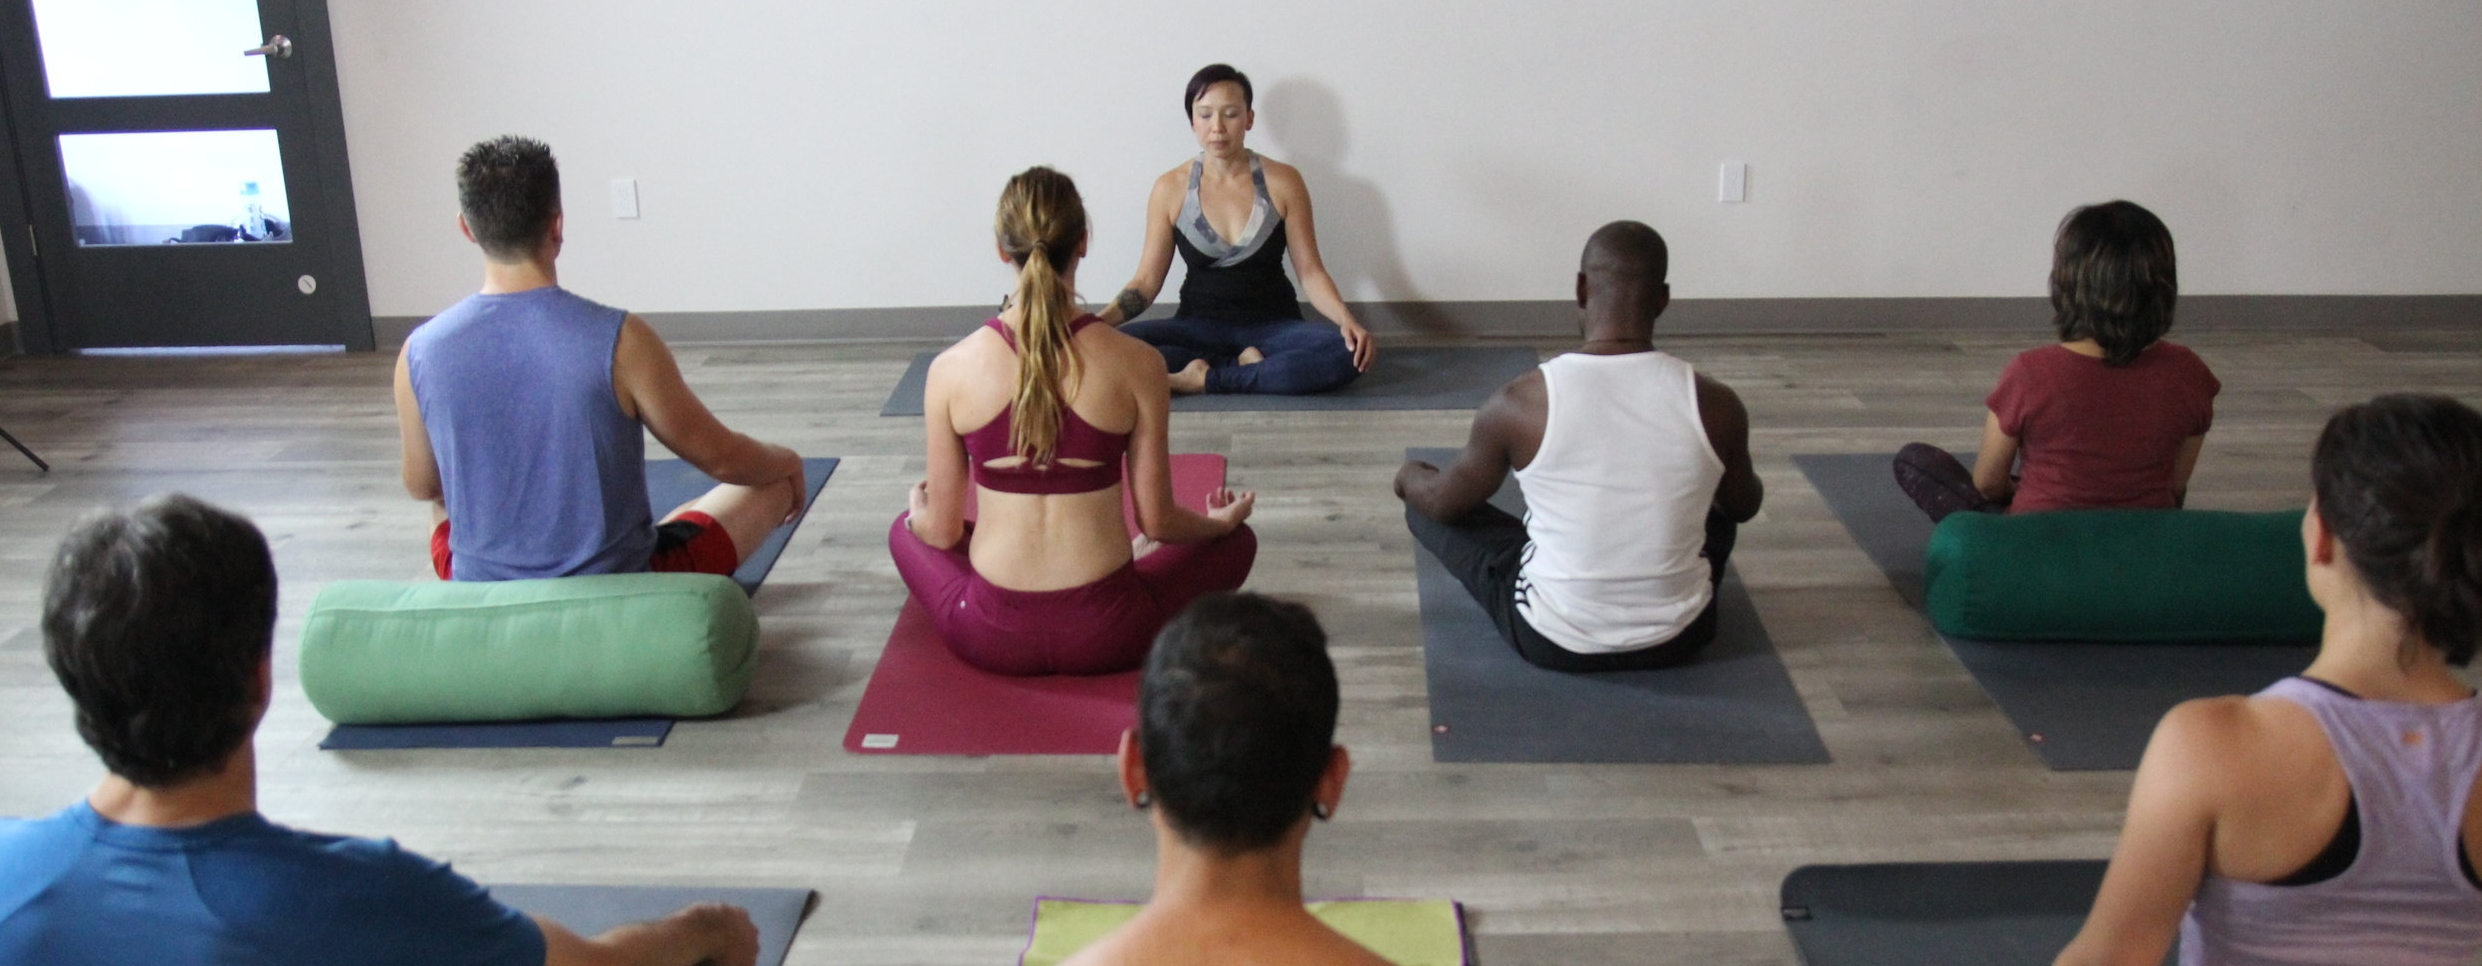 Group meditation 1.jpg